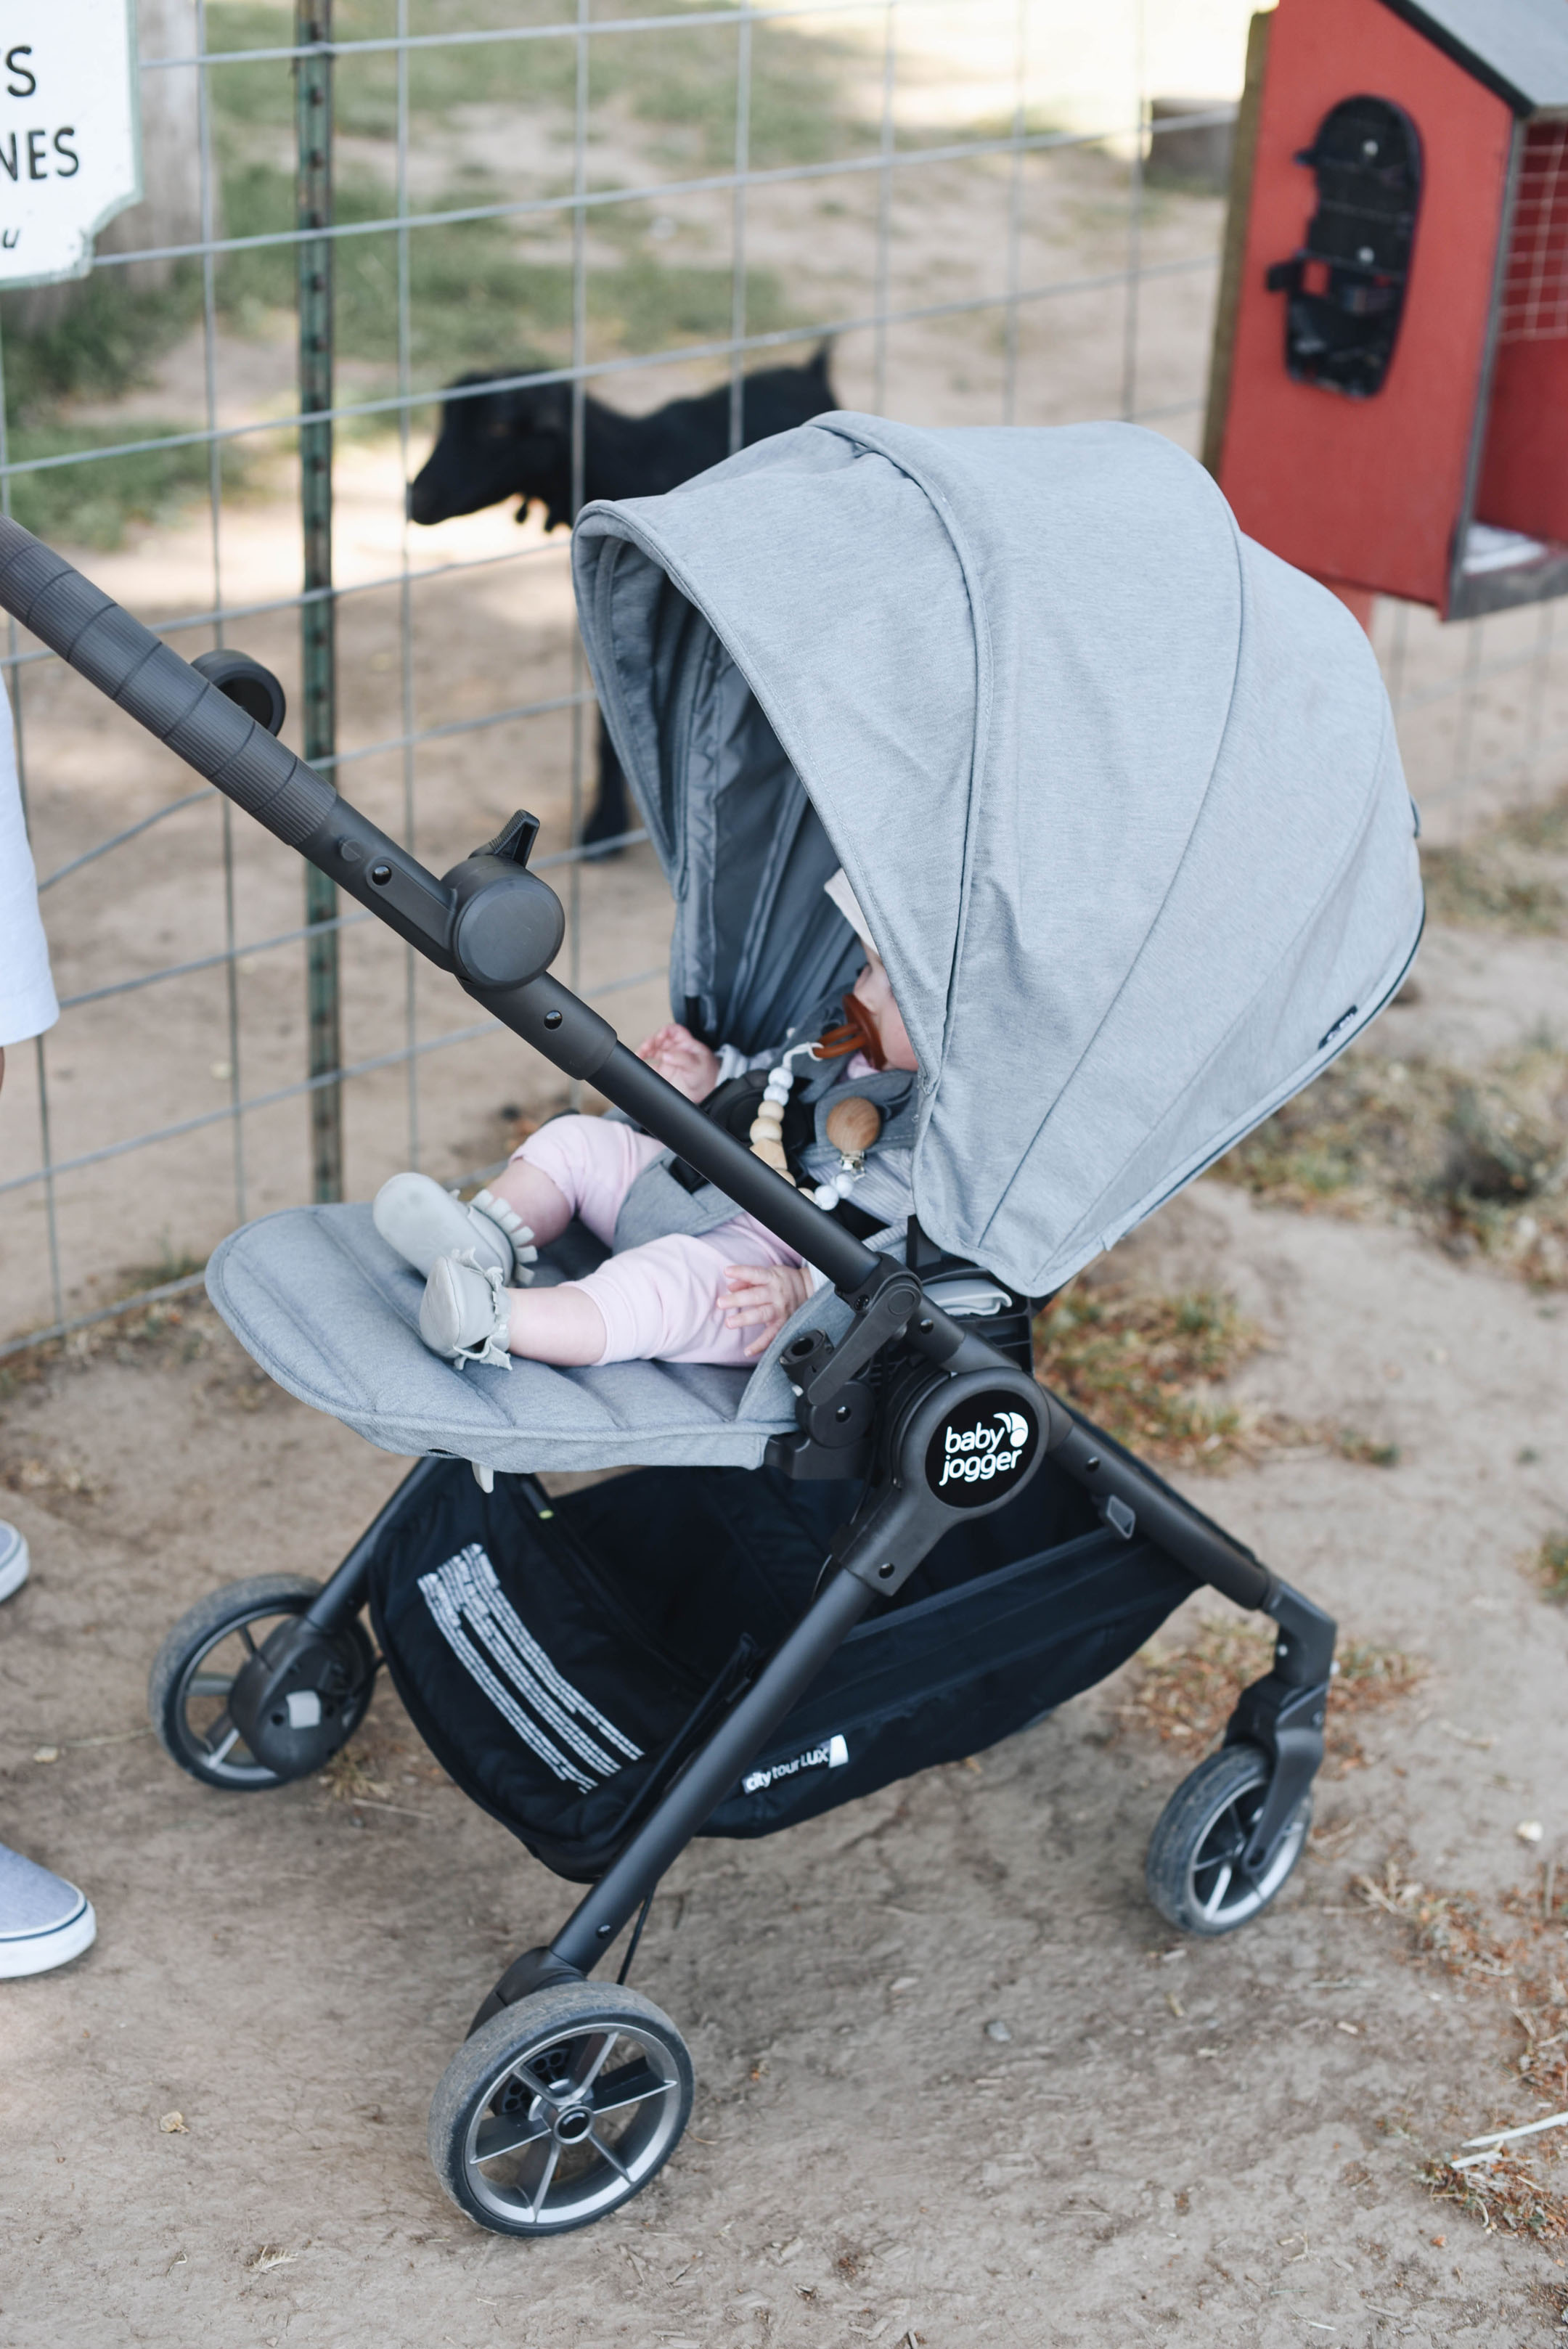 Fir Point Farms With Baby Jogger S City Tour Lux Stroller